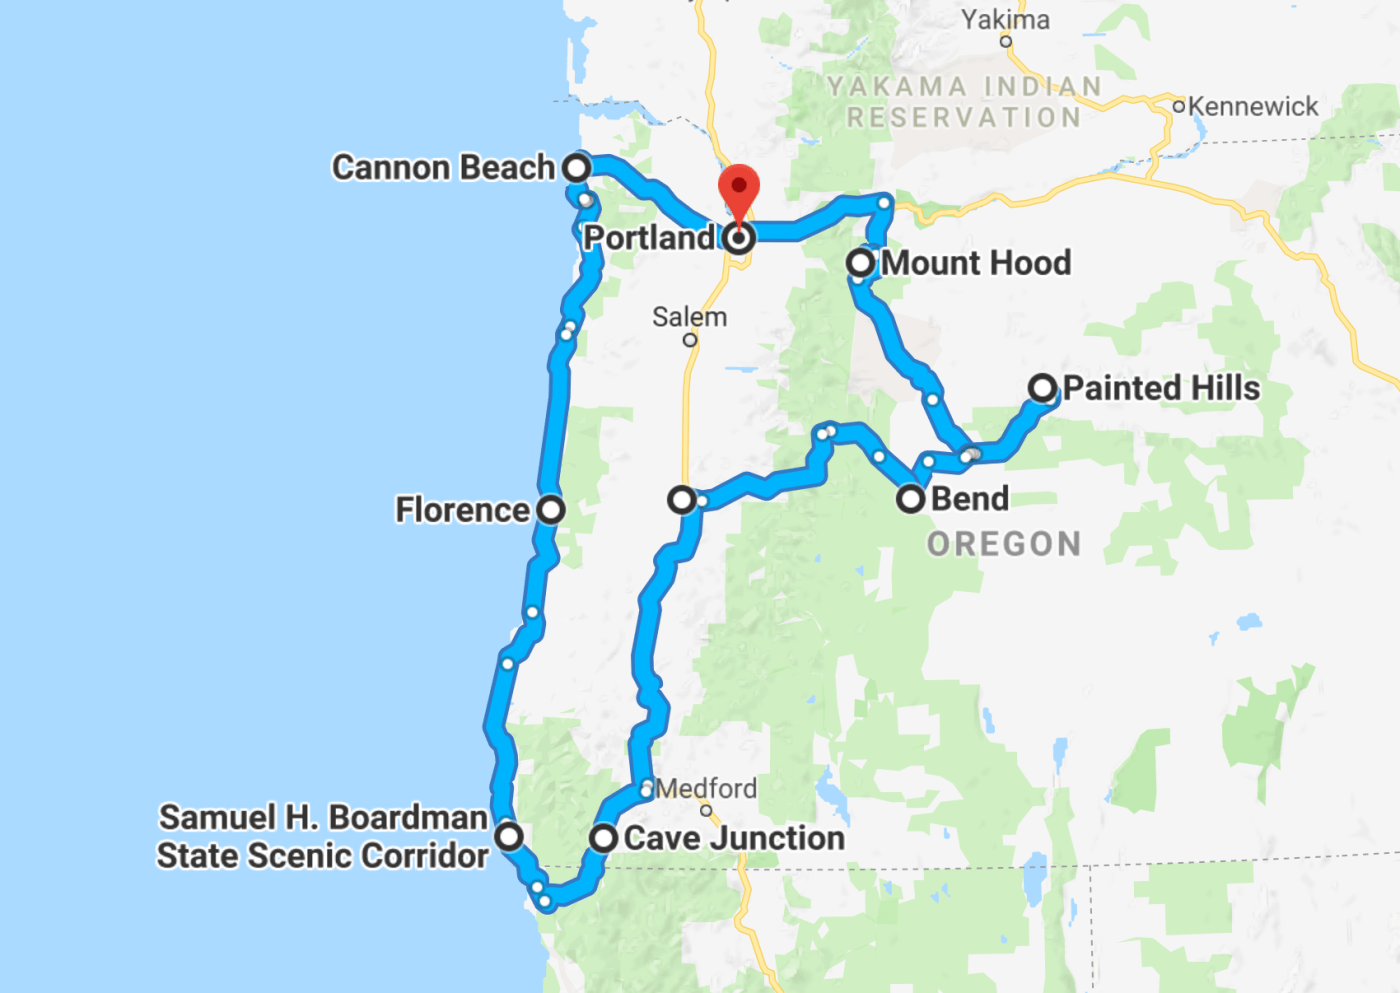 The Ultimate Oregon Road Trip Itinerary You Should Steal - Follow Me Away